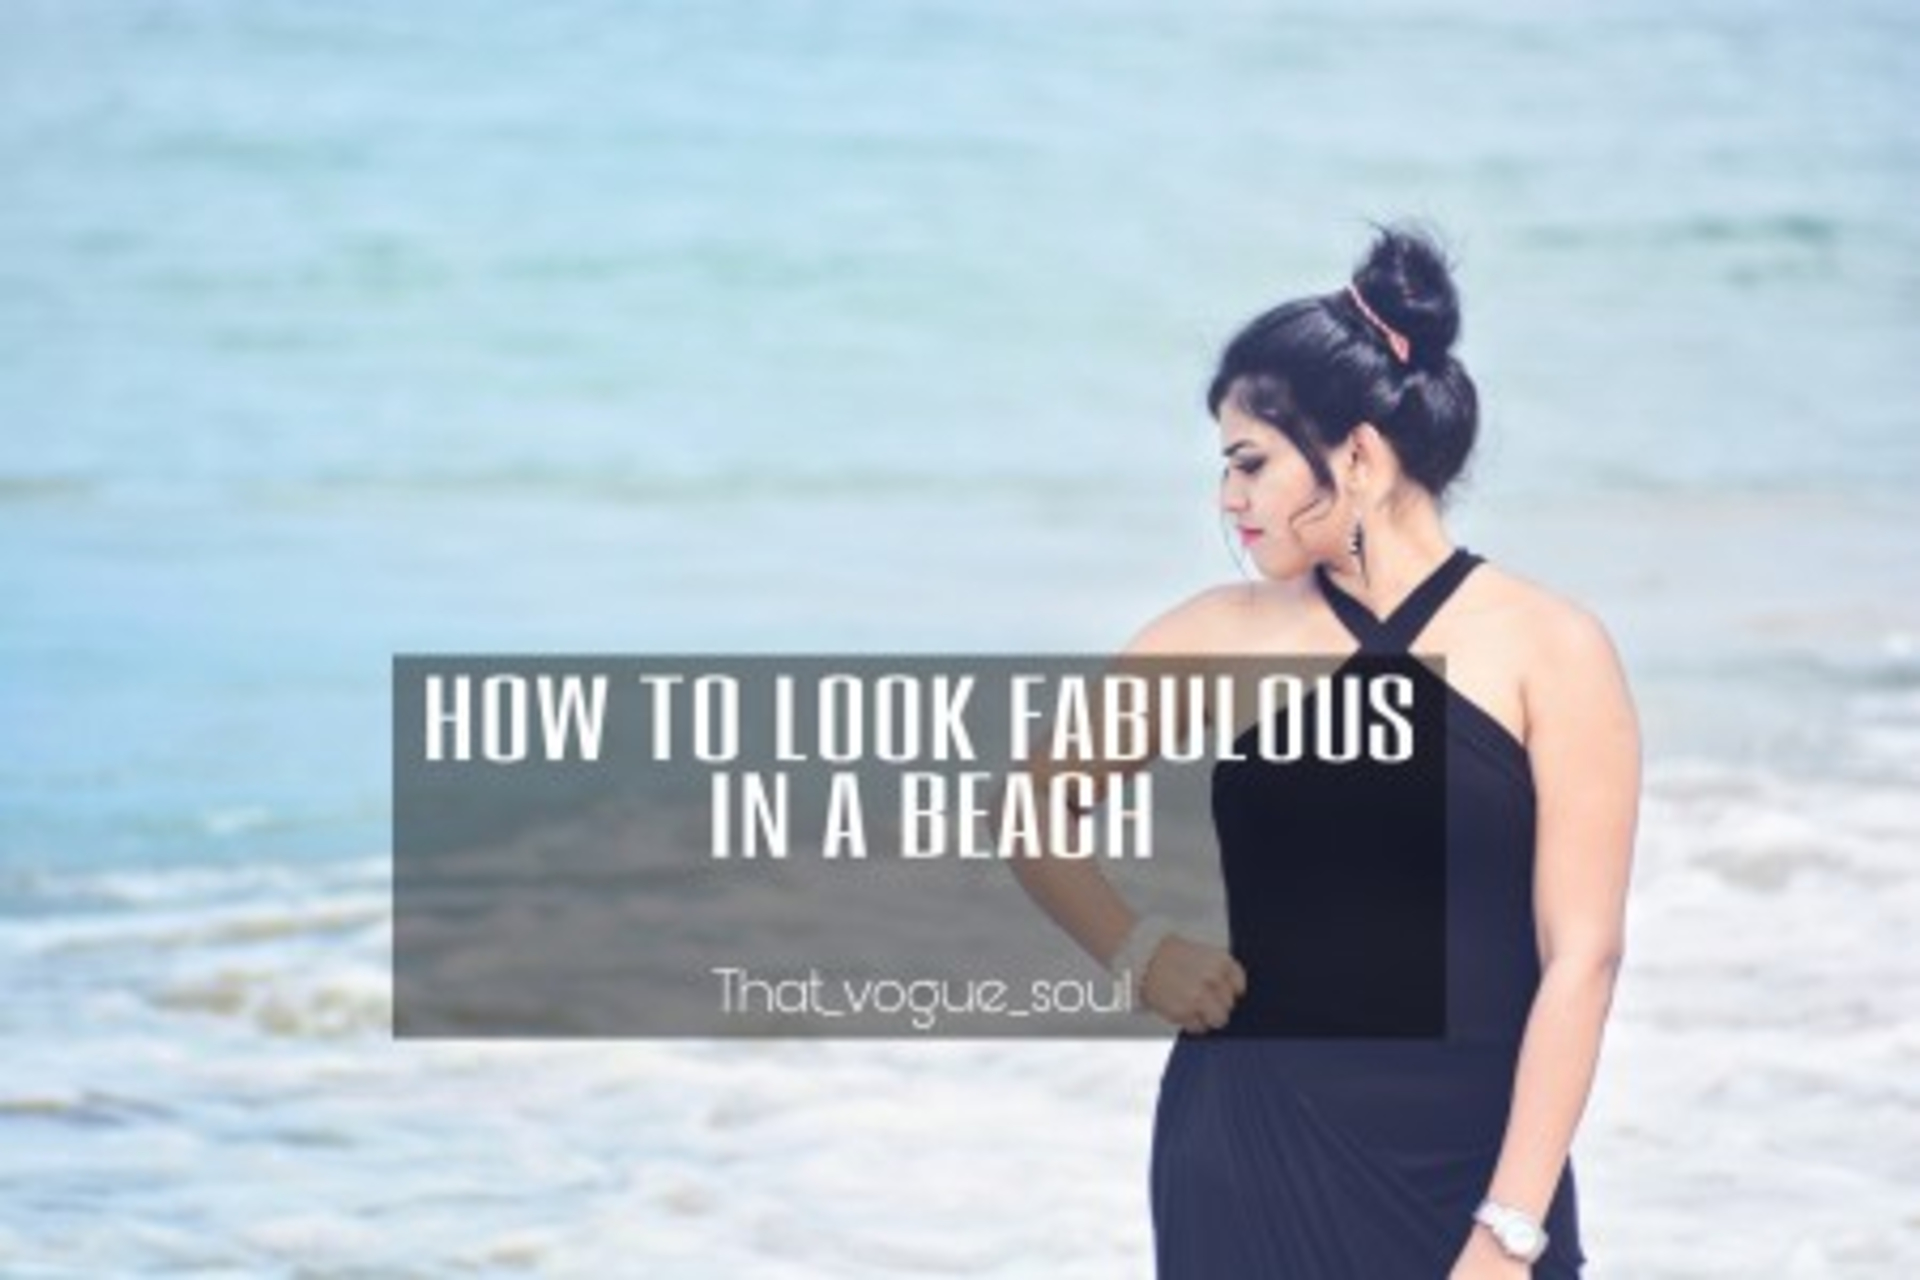 HOW TO LOOK FABULOUS IN A BEACH image